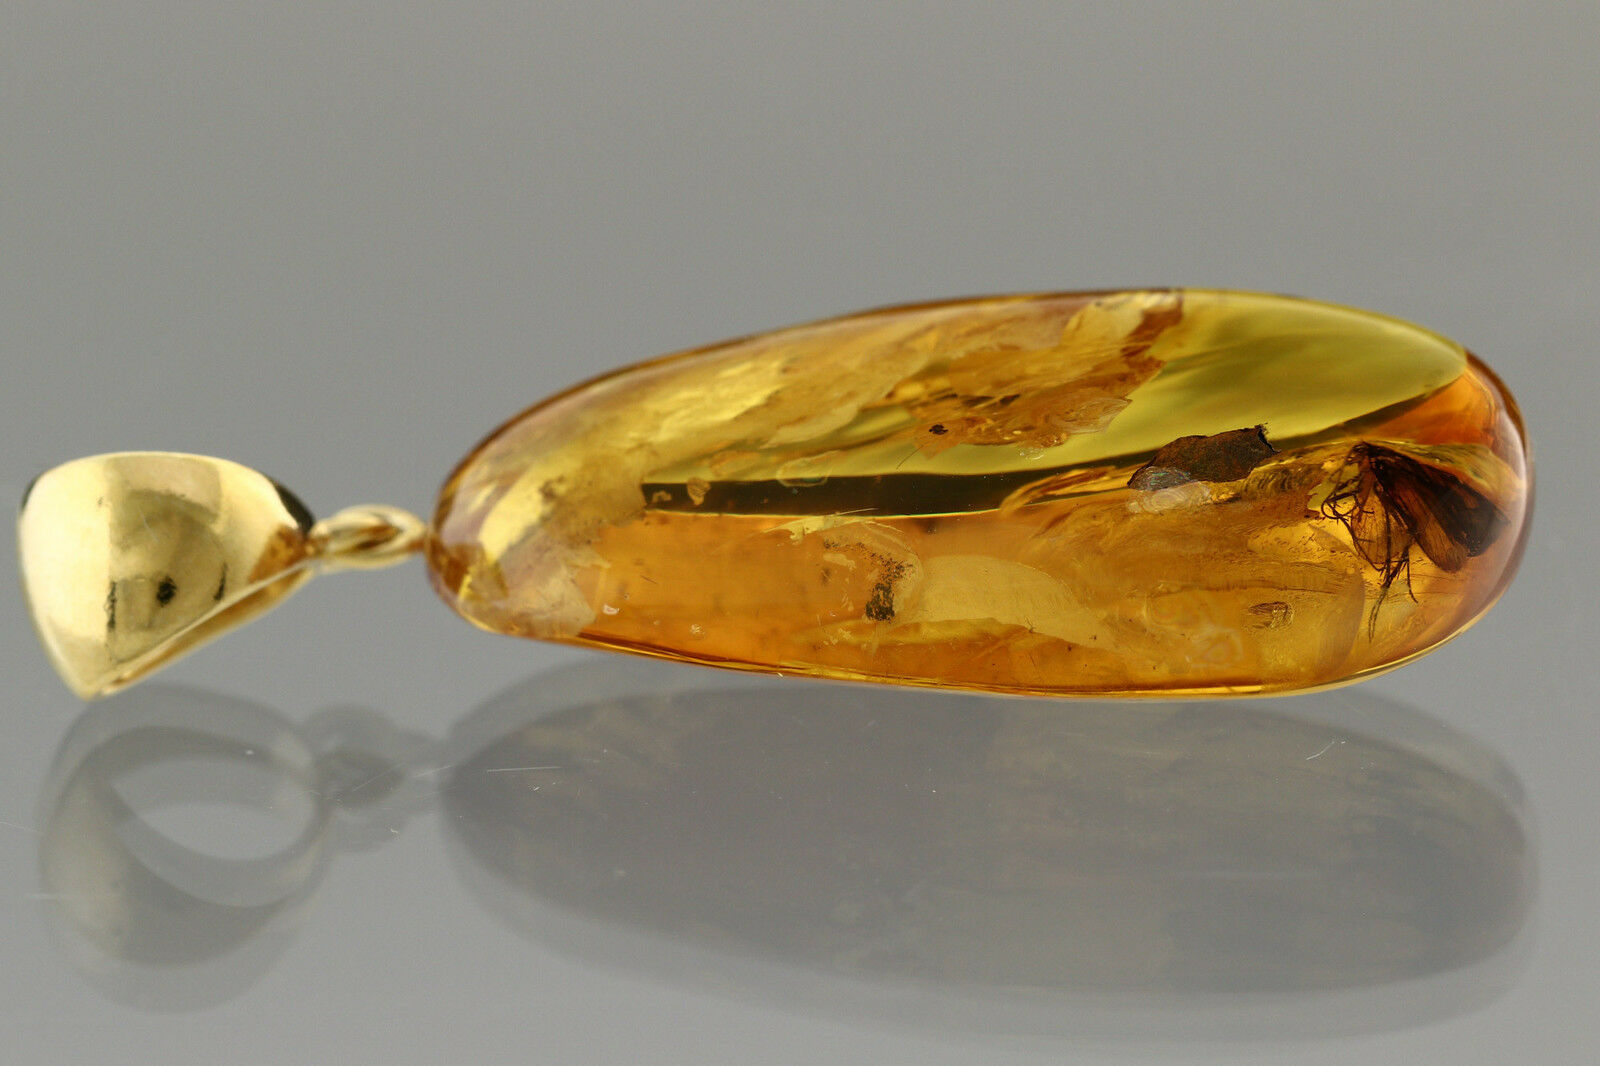 Fossil CADDISFLY Inclusion BALTIC AMBER gold Plated Pendant 7.2g p160818-12